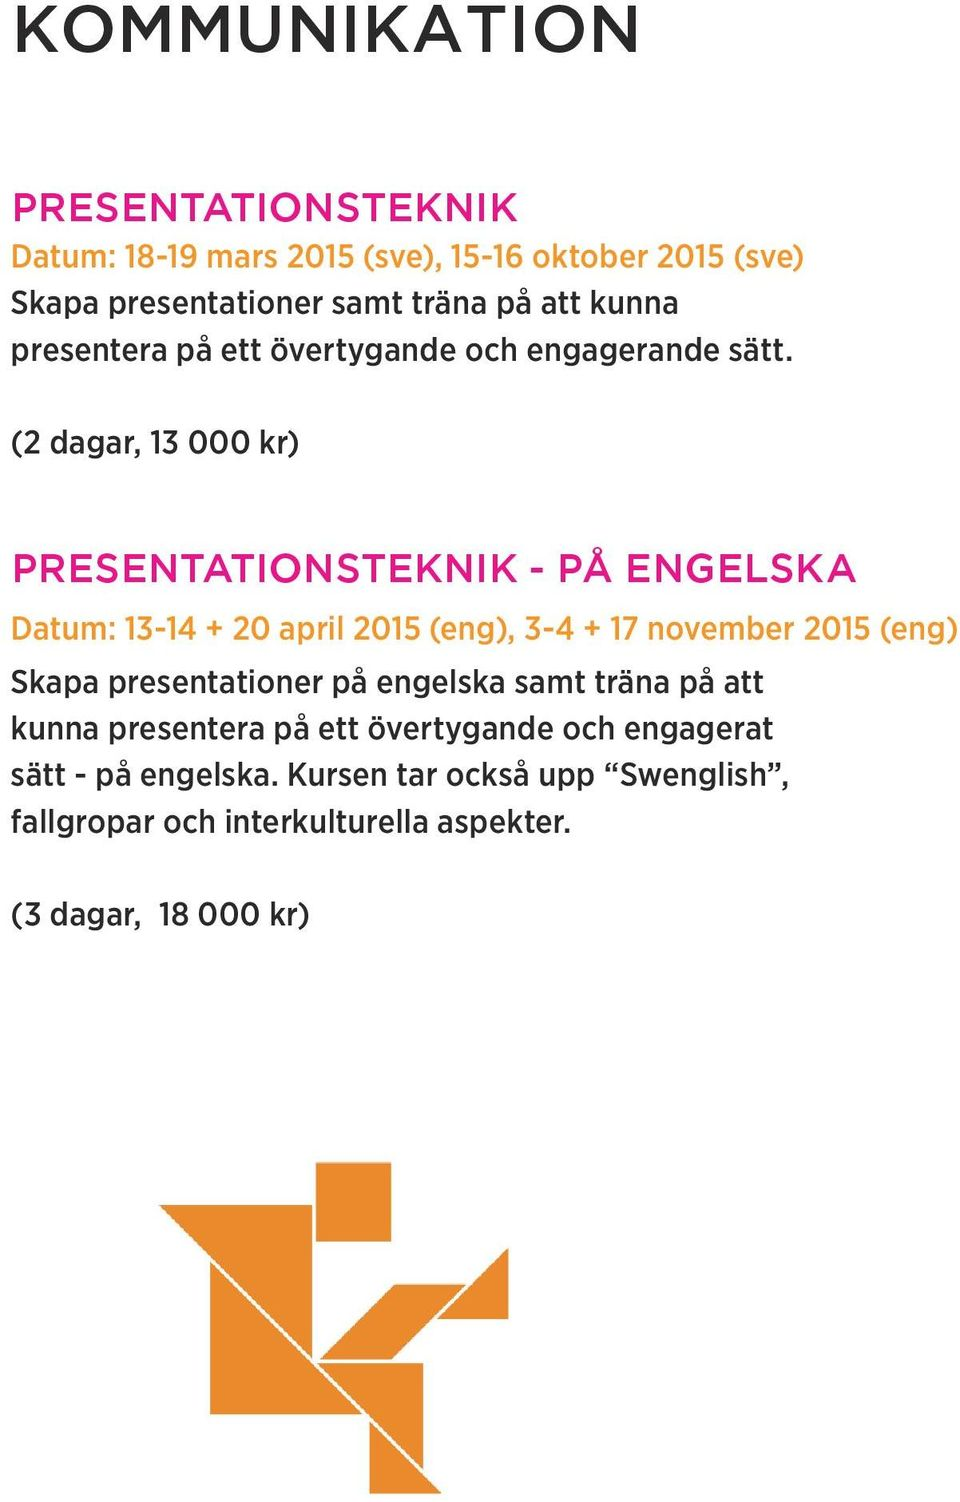 PRESENTATIONSTEKNIK - PÅ ENGELSKA Datum: 13-14 + 20 april 2015 (eng), 3-4 + 17 november 2015 (eng) Skapa presentationer på